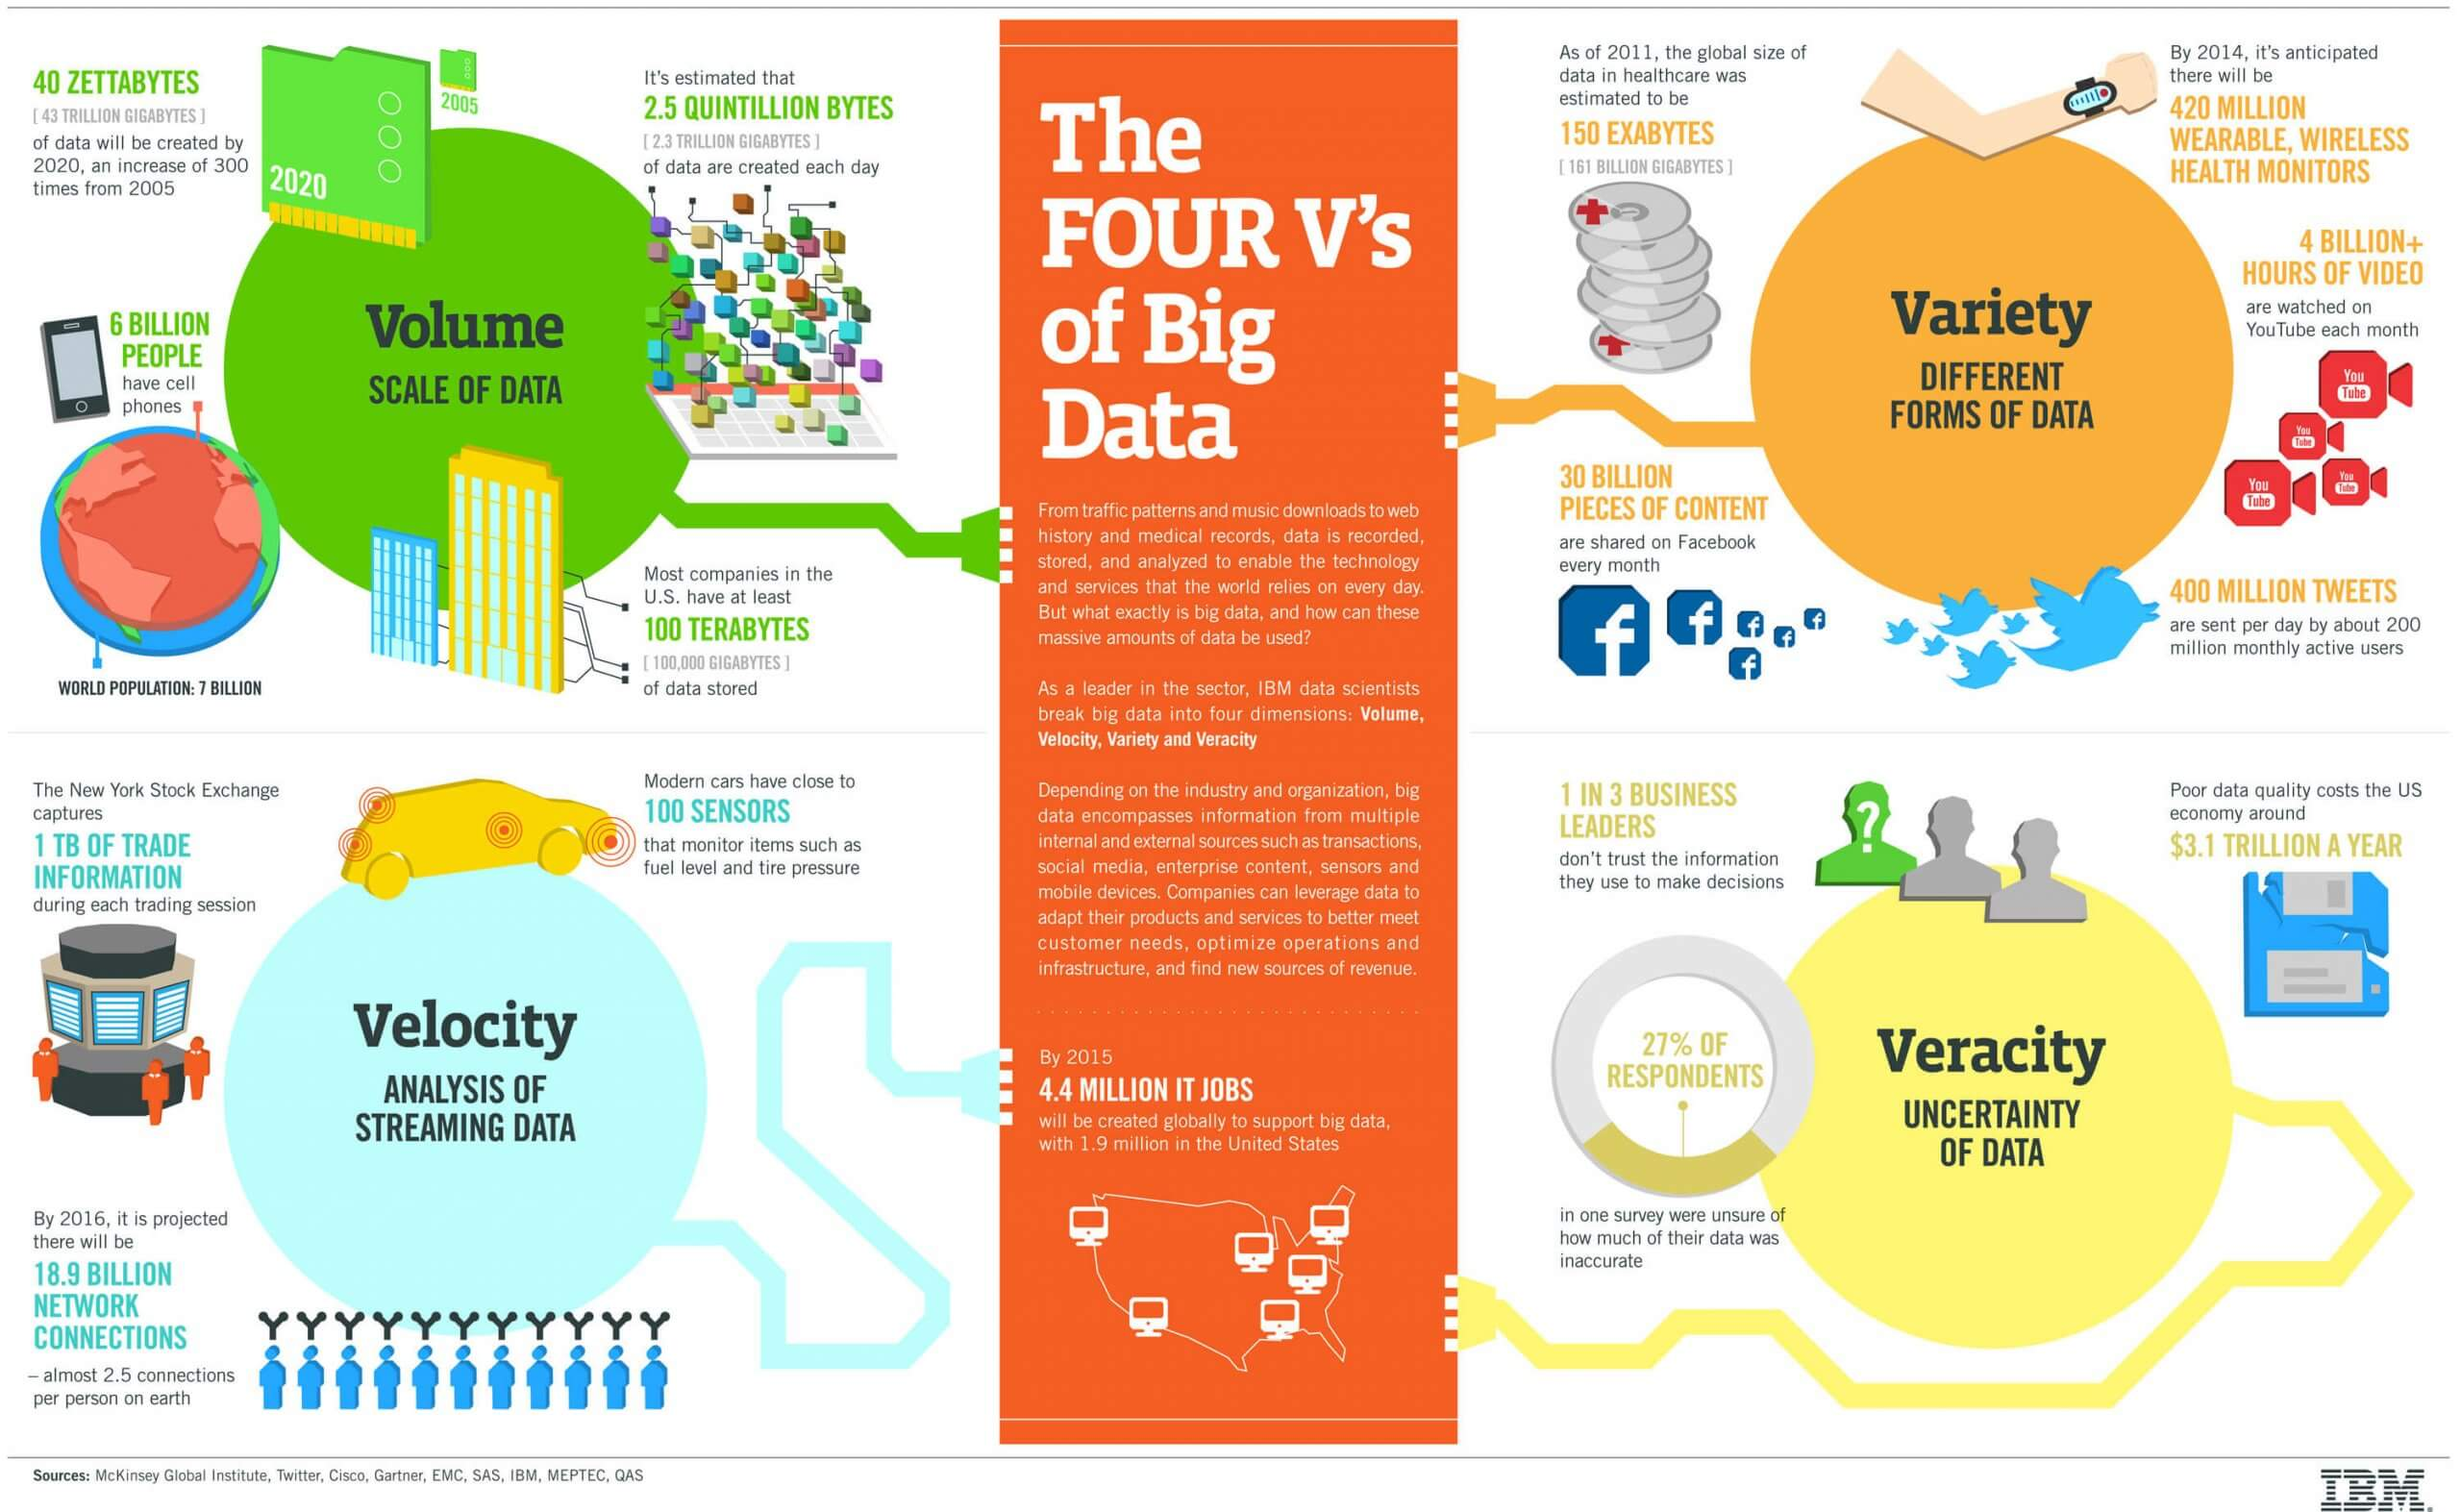 The 4 V's of Big Data.